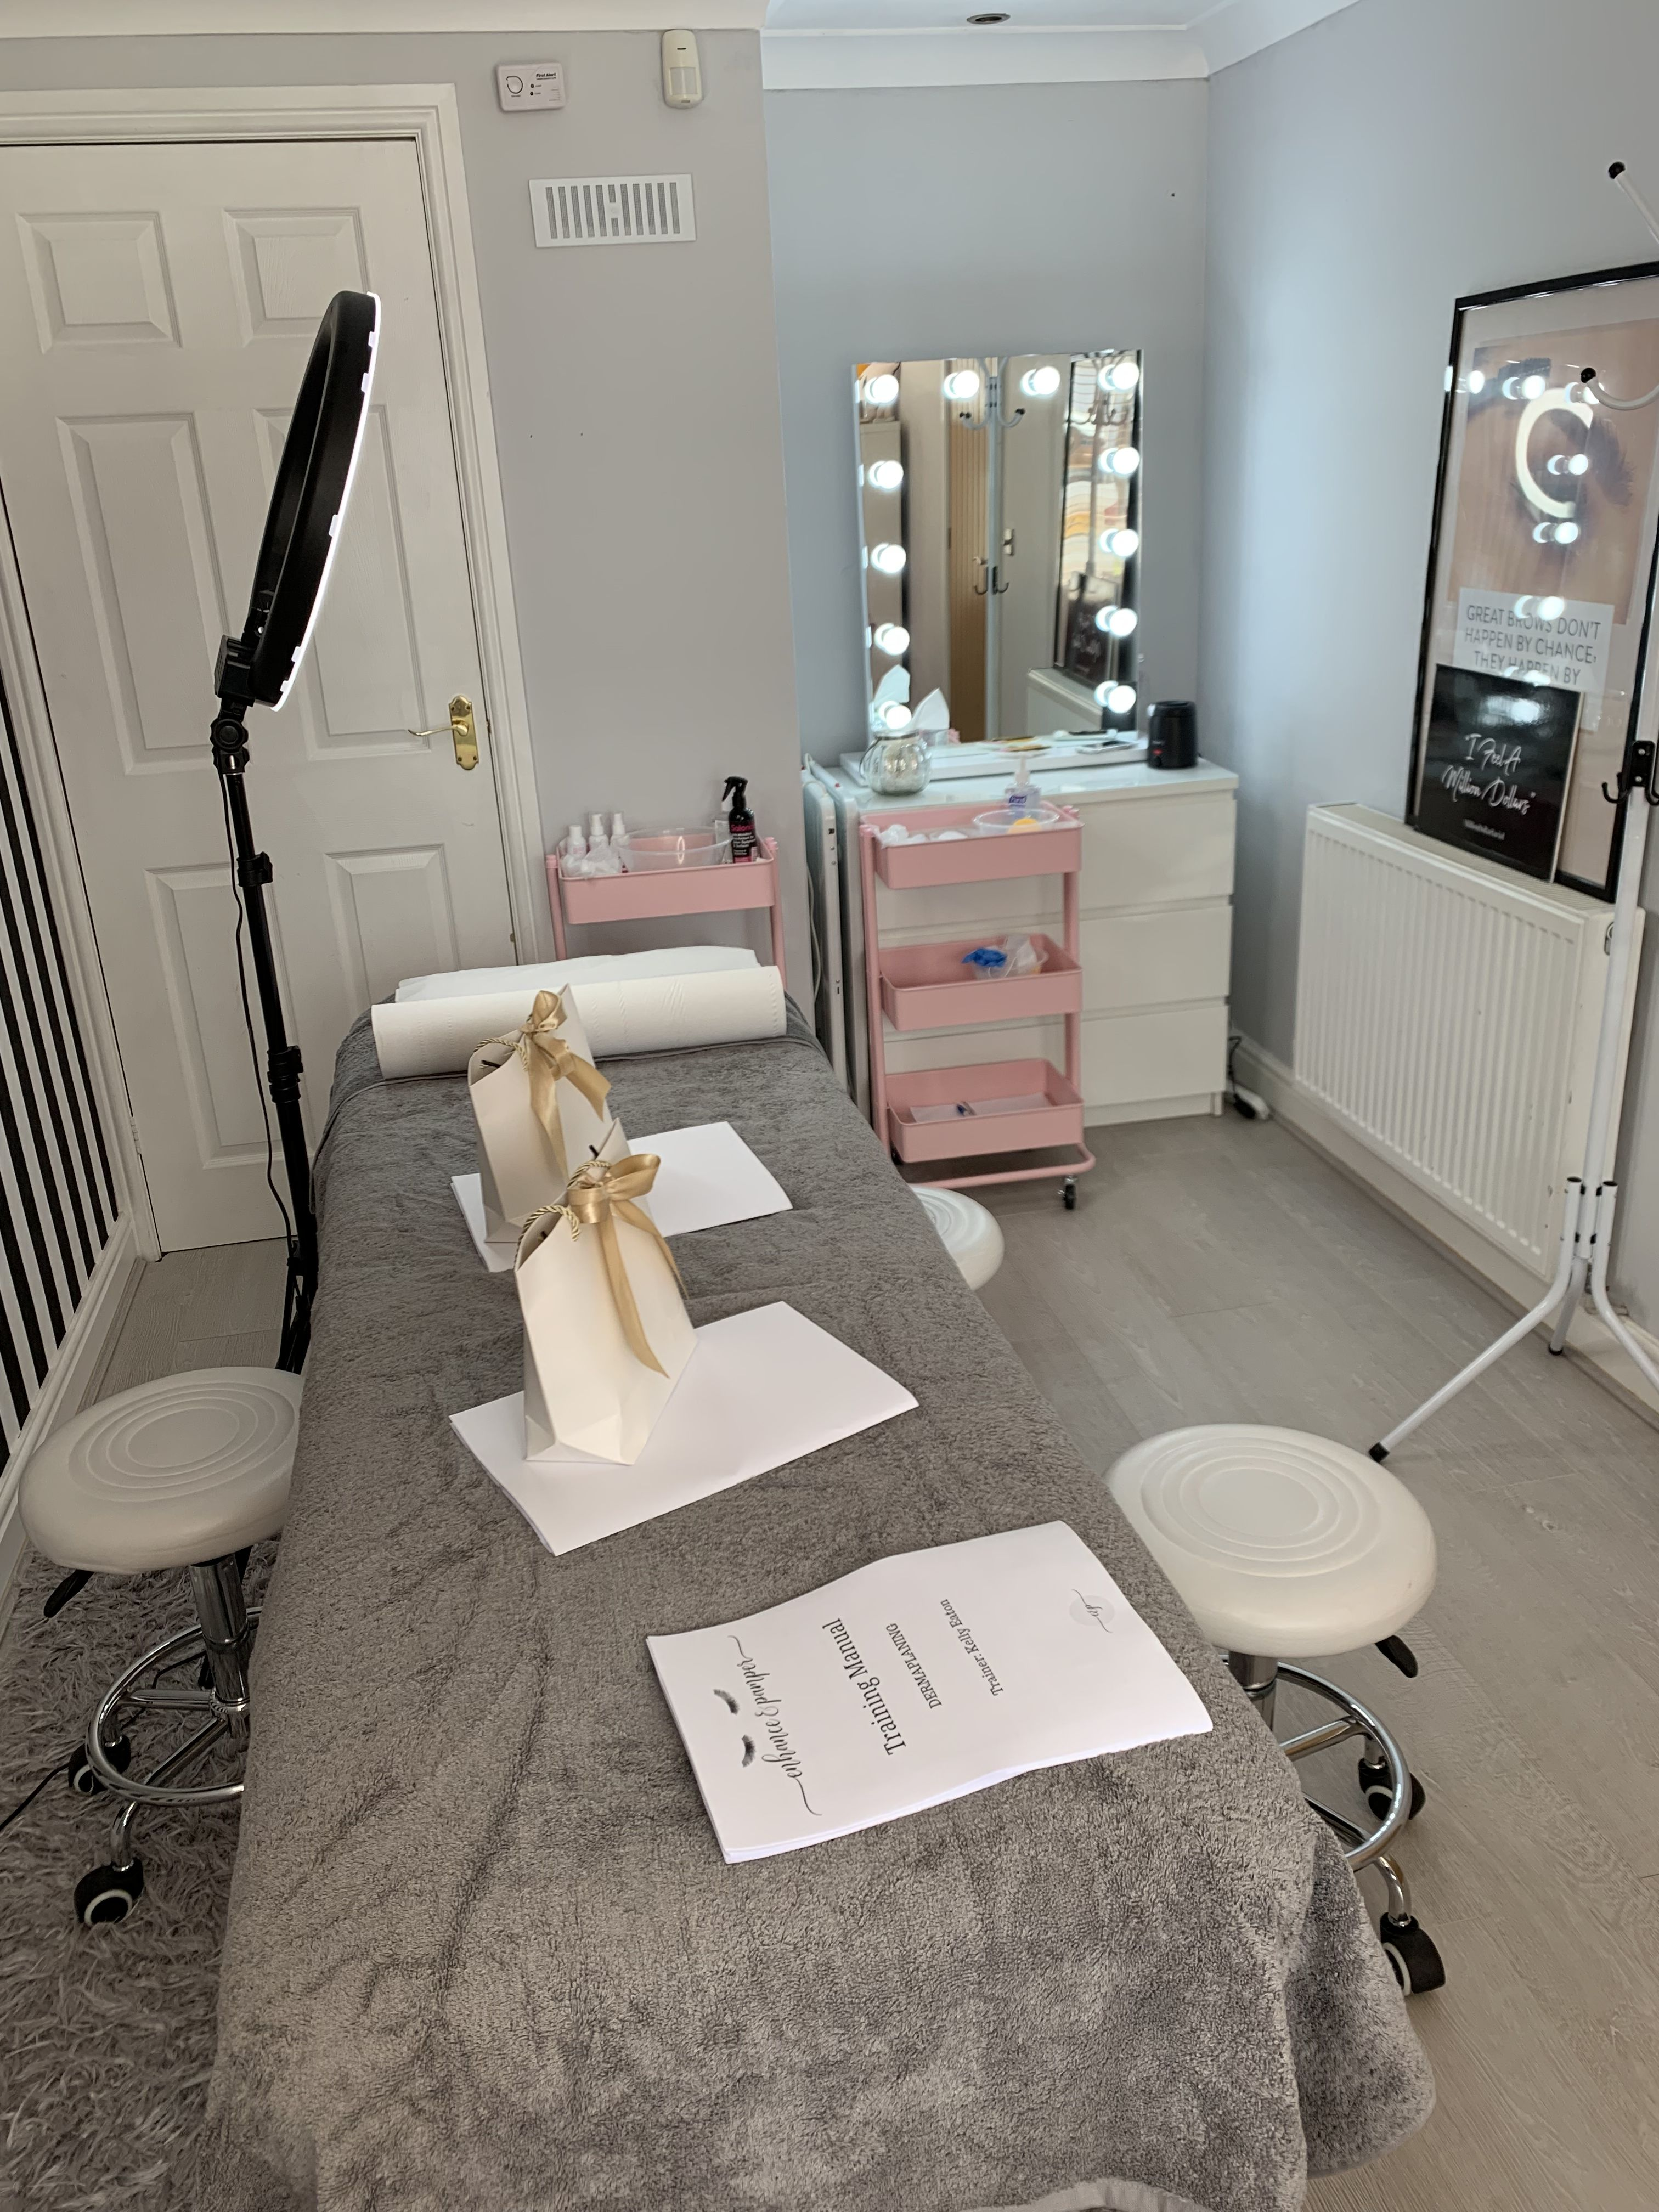 Lash Training Session At Enhance And Pamper In 2020 Esthetics Room Beauty Room Decor Spa Room Decor